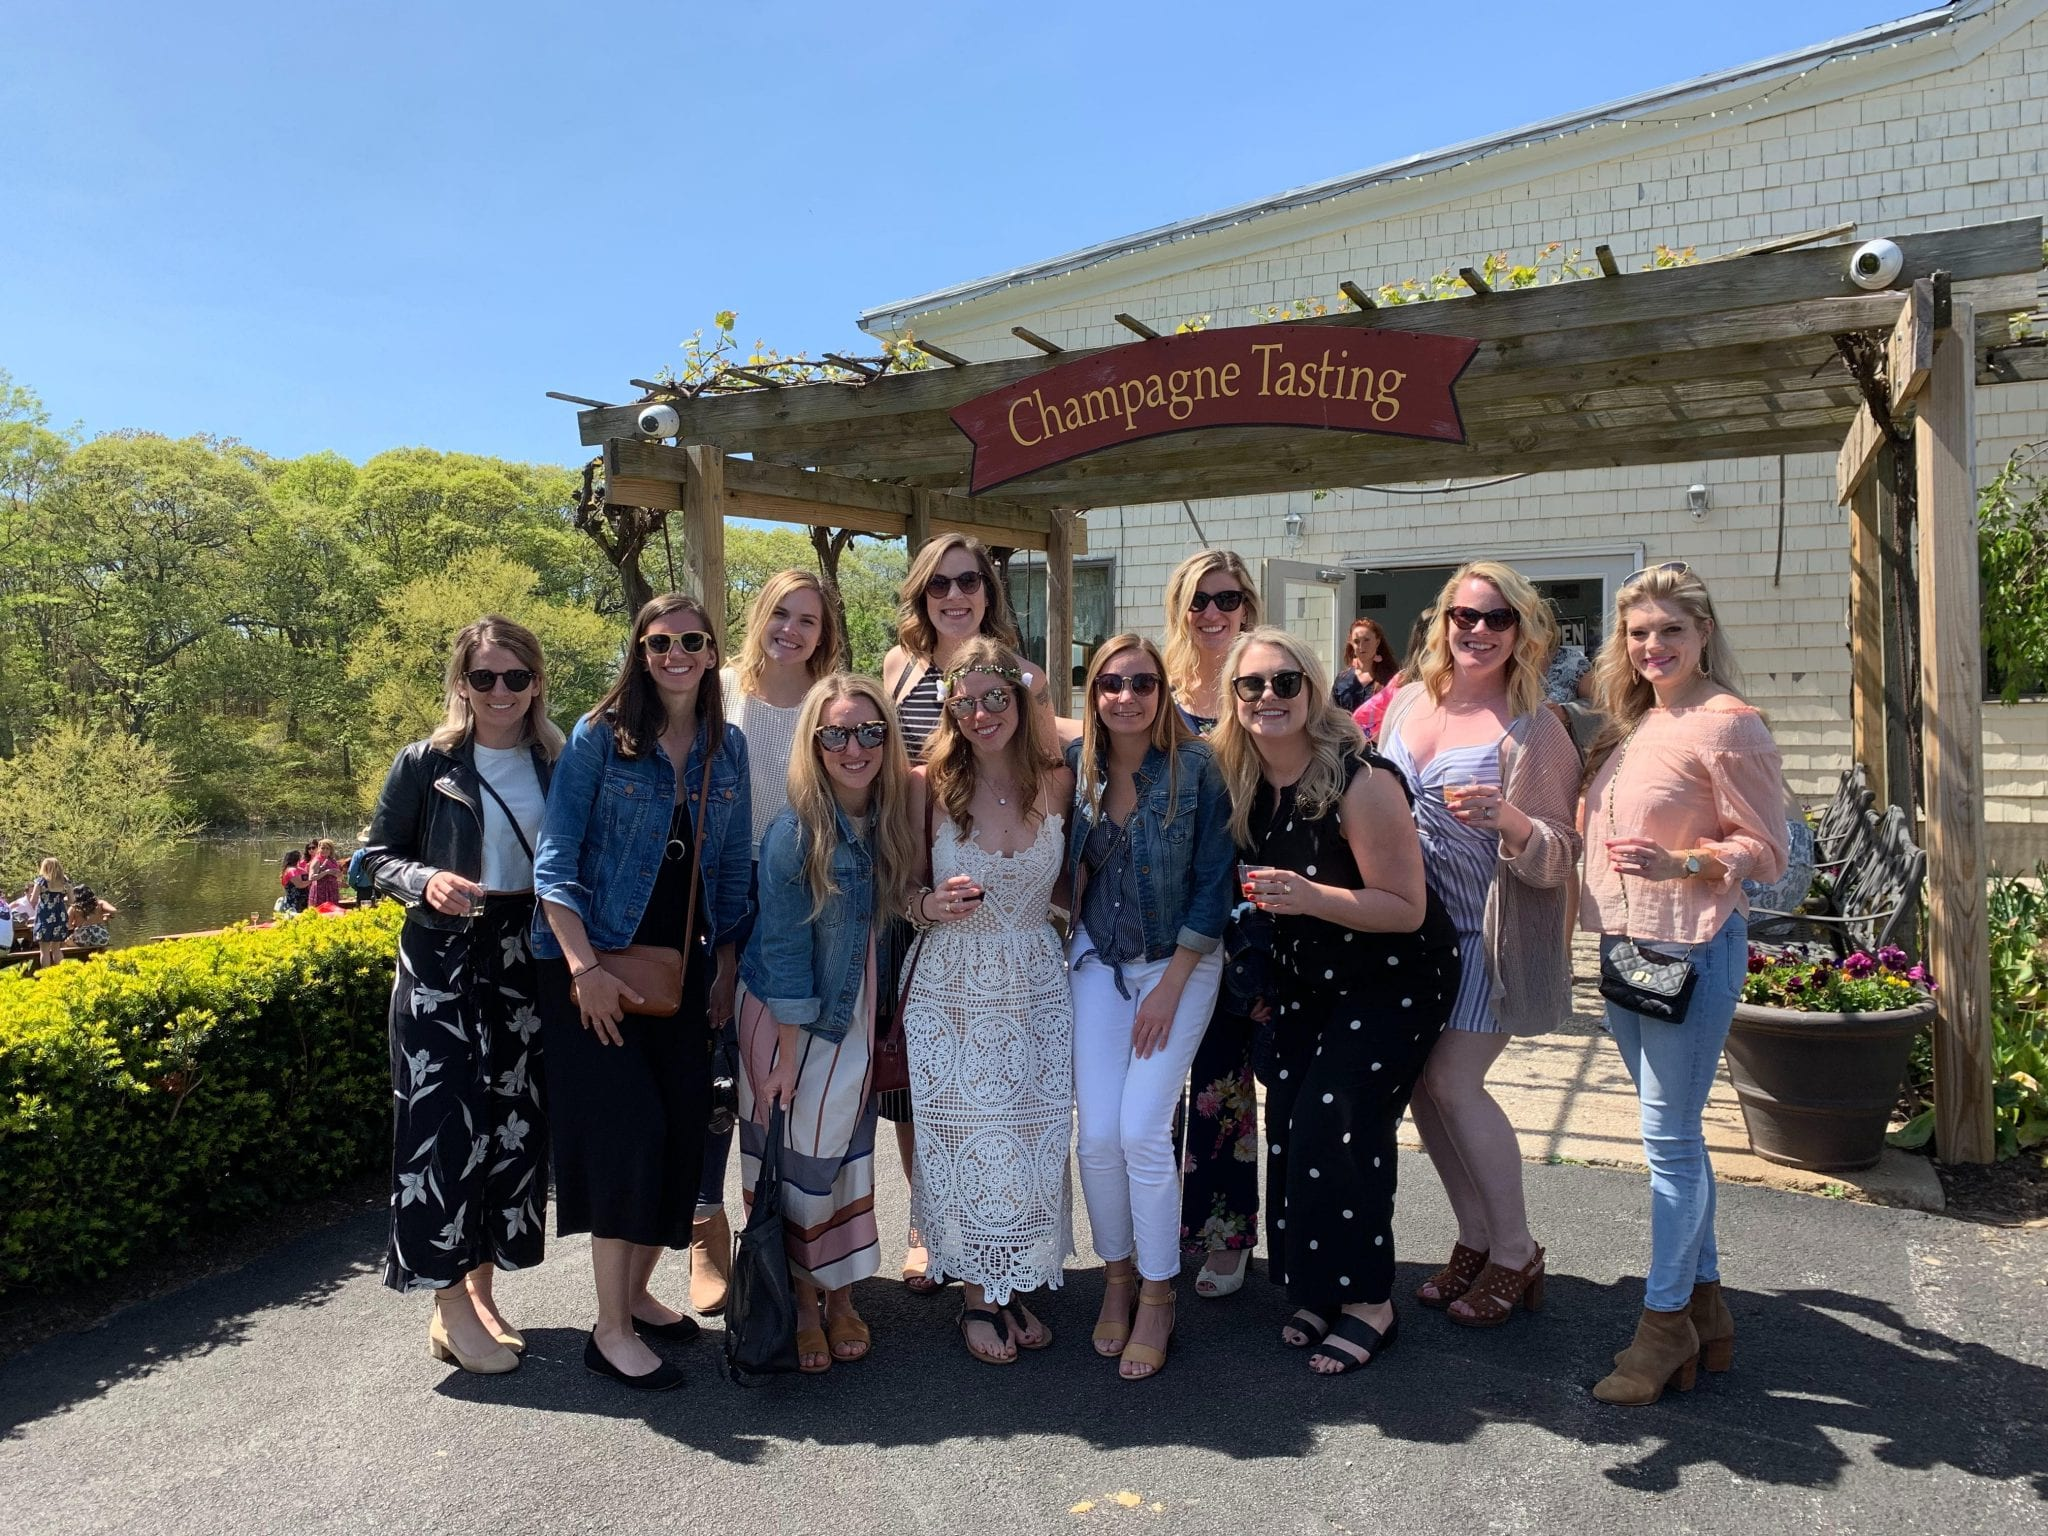 Wine Tours on Long Island with Friends & LI Vineyard Tours